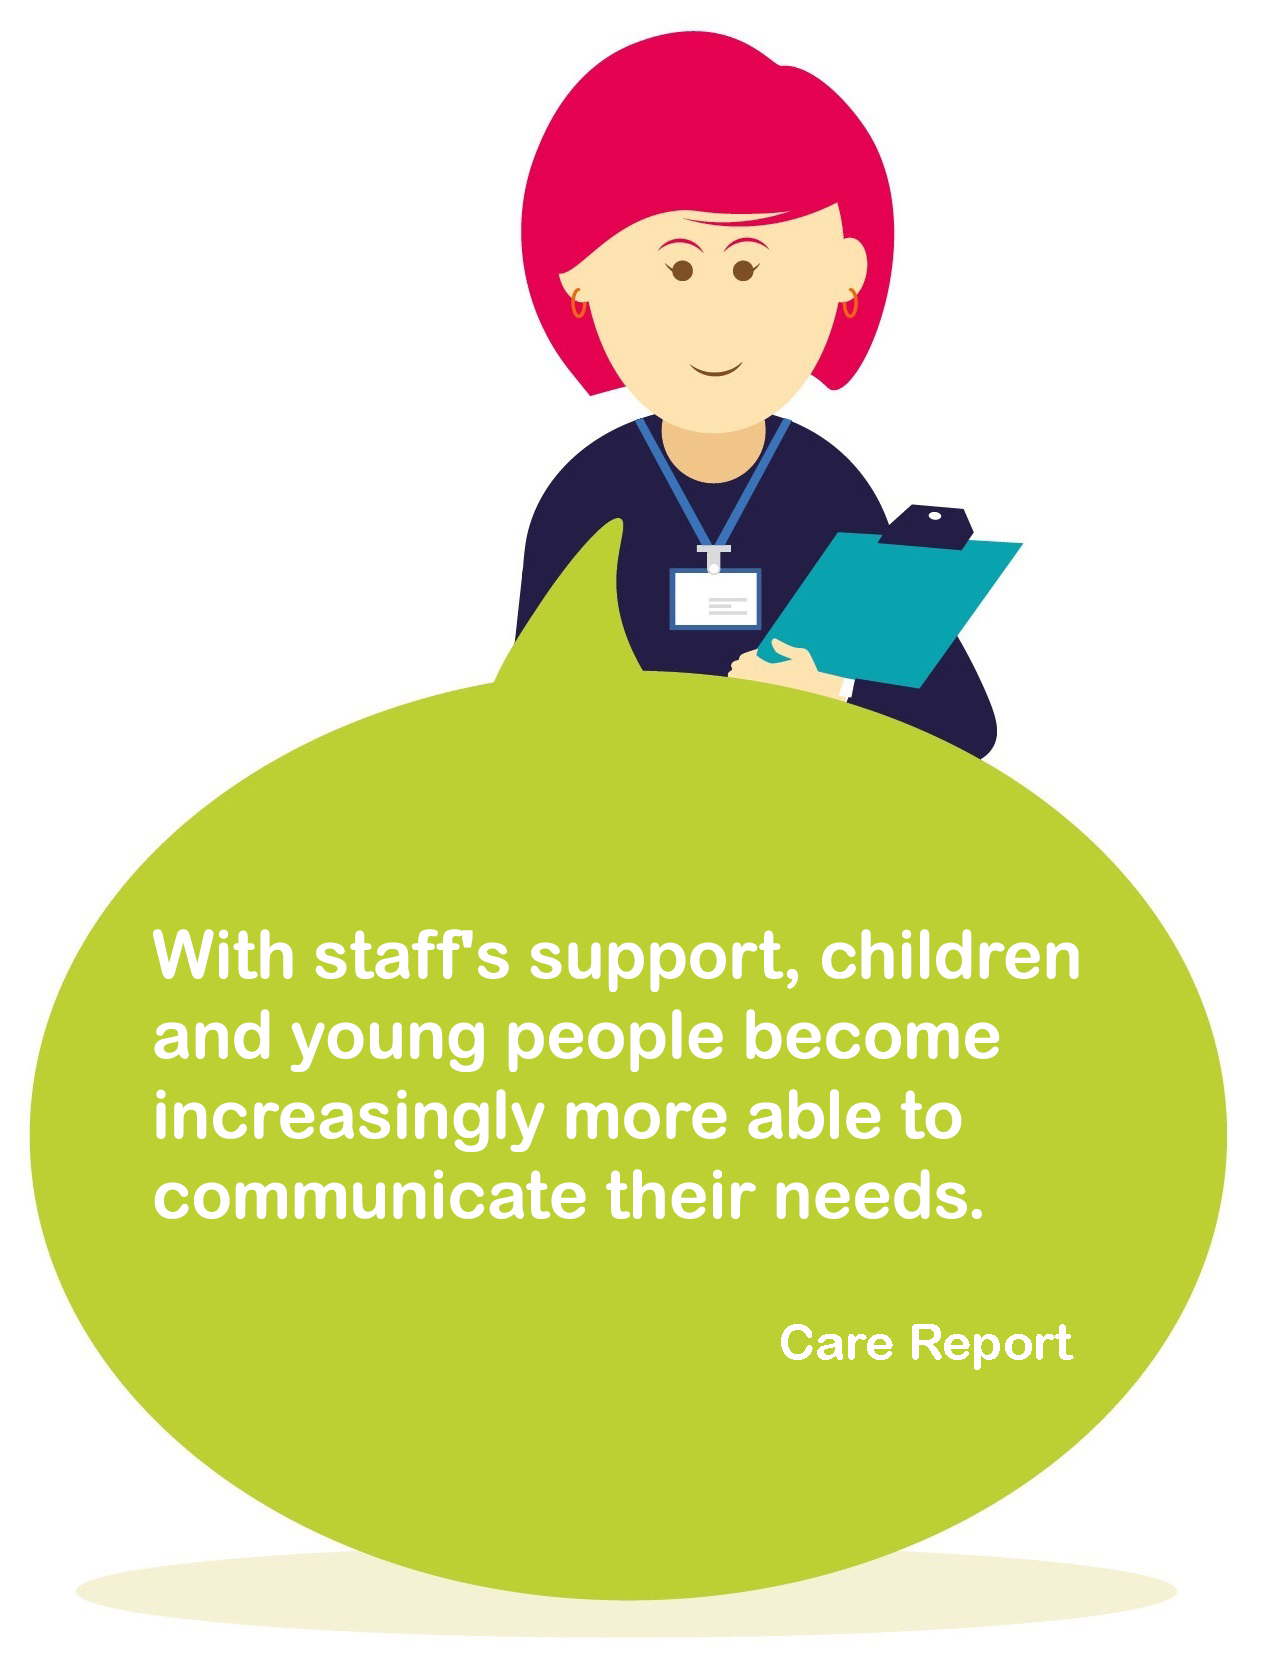 wilsic care report image